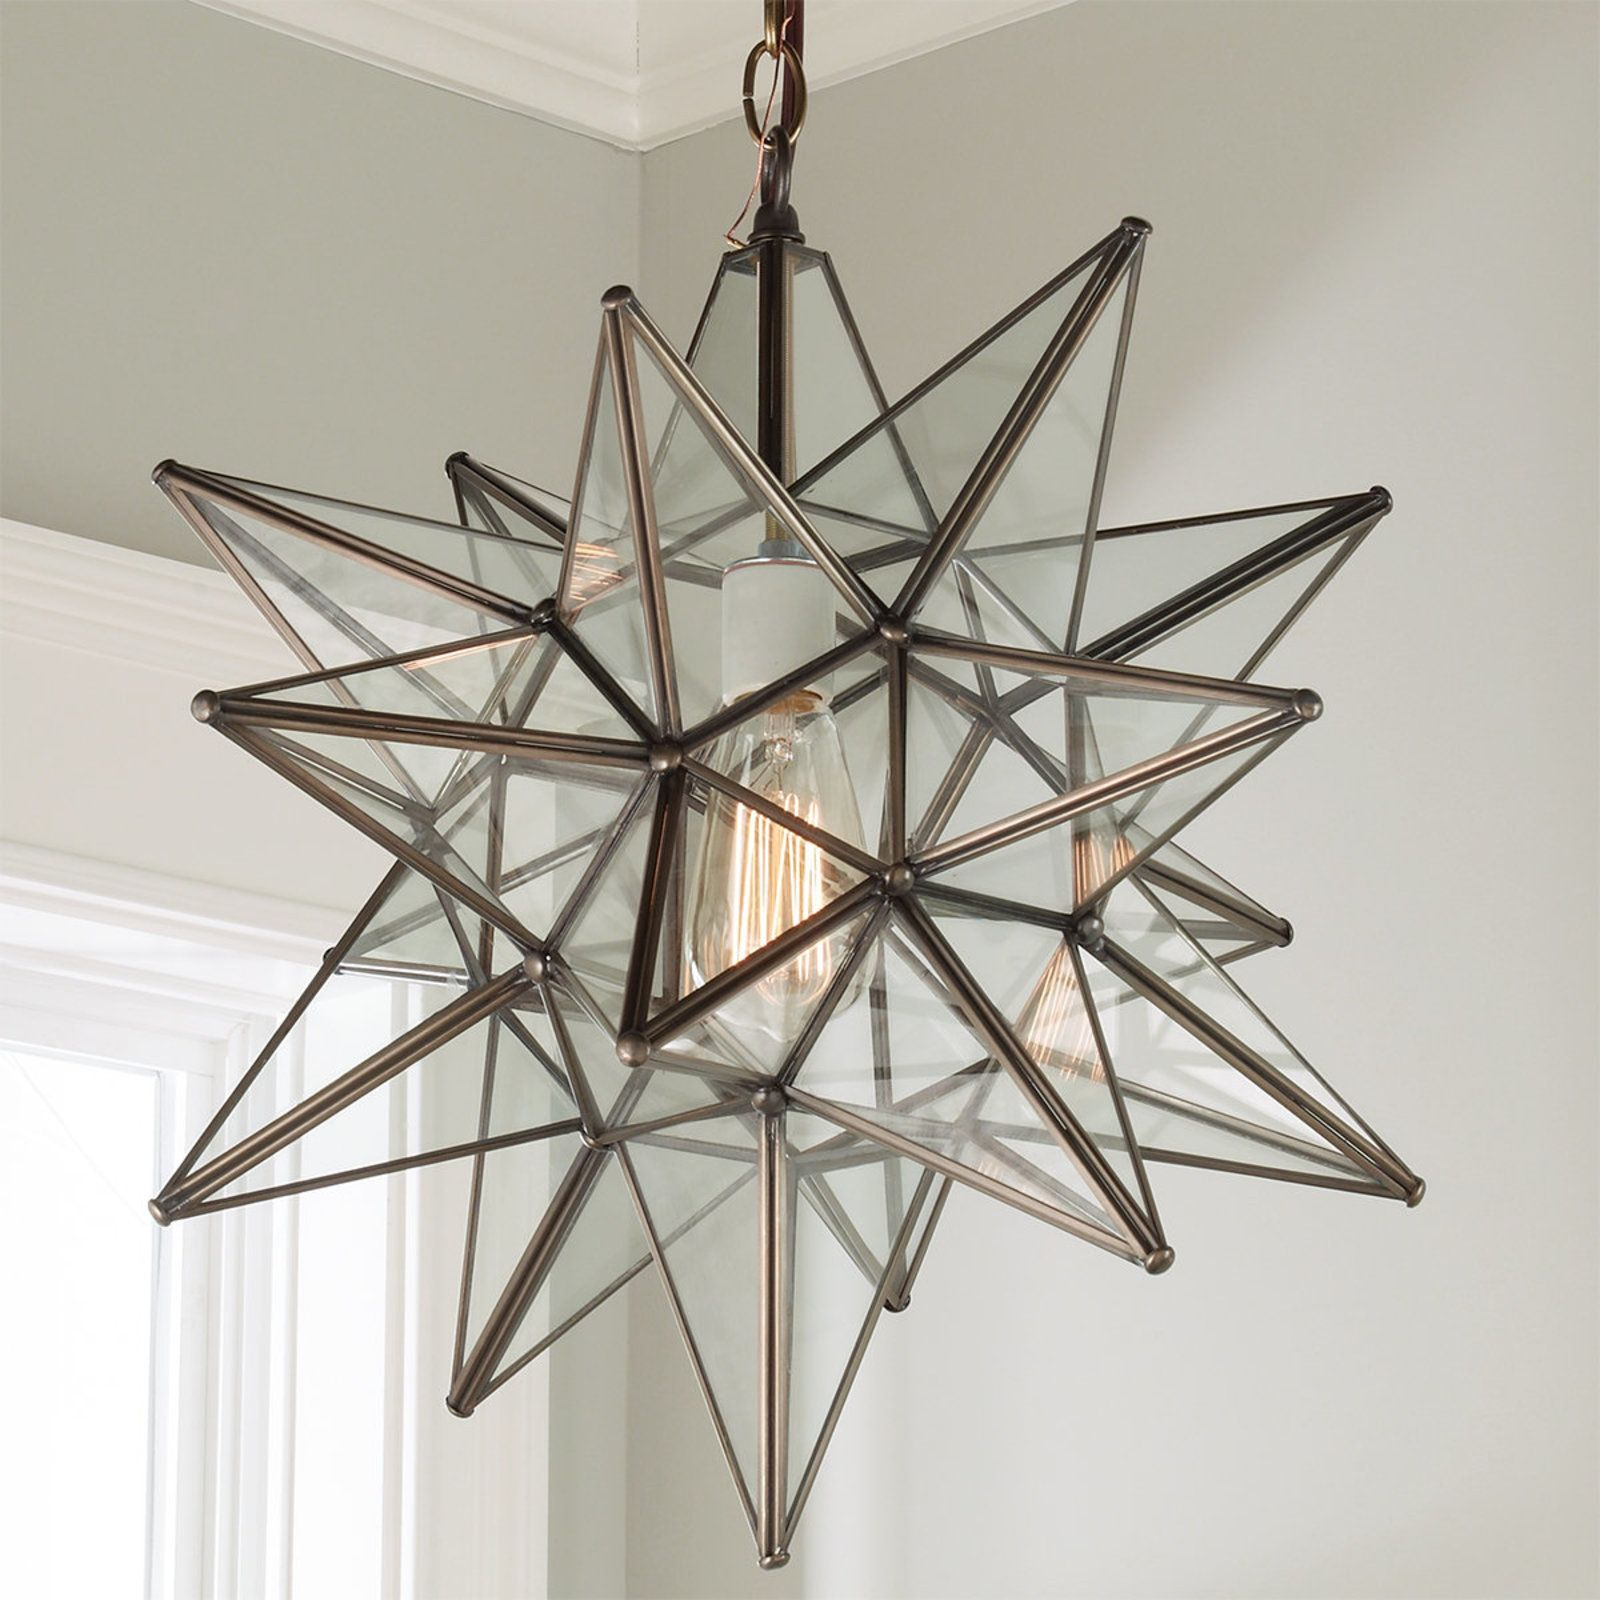 moravian f mirror inch aged glass cfm comfort chapman star and in antique light wide visual item shown iron lighting e finish